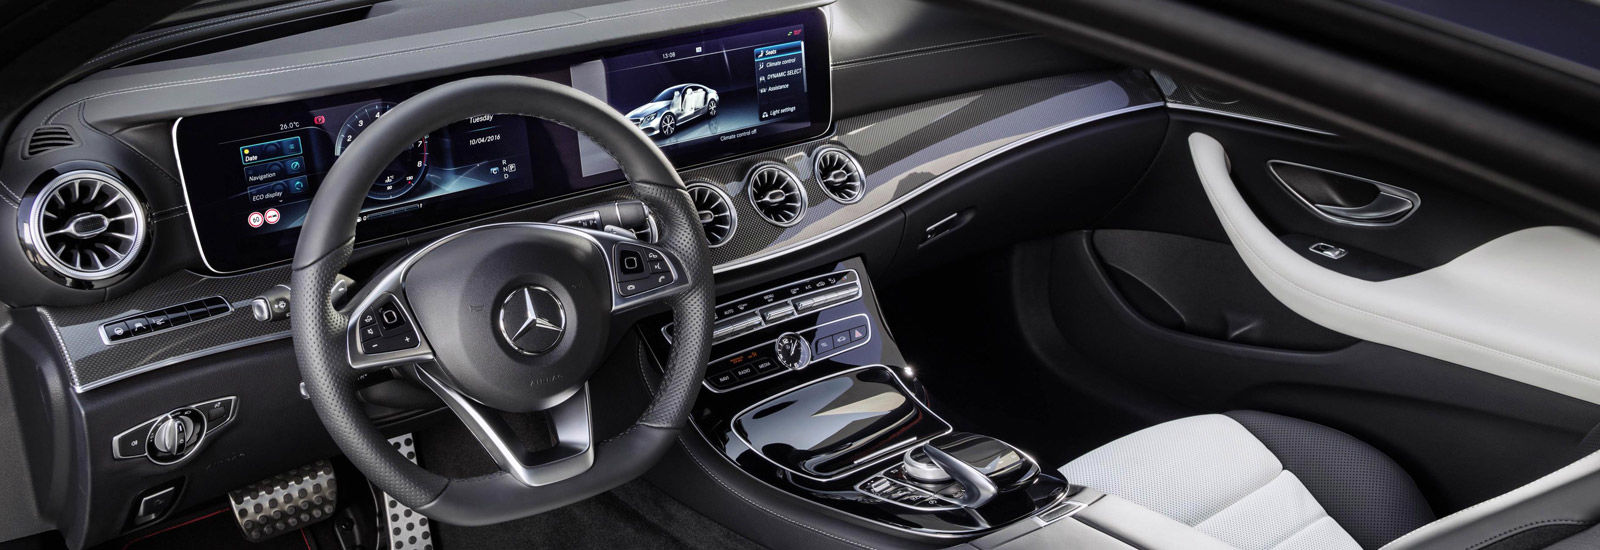 Mercedes Benz E Class Coupe Interior Www Imgkid Com The Image Kid Has It